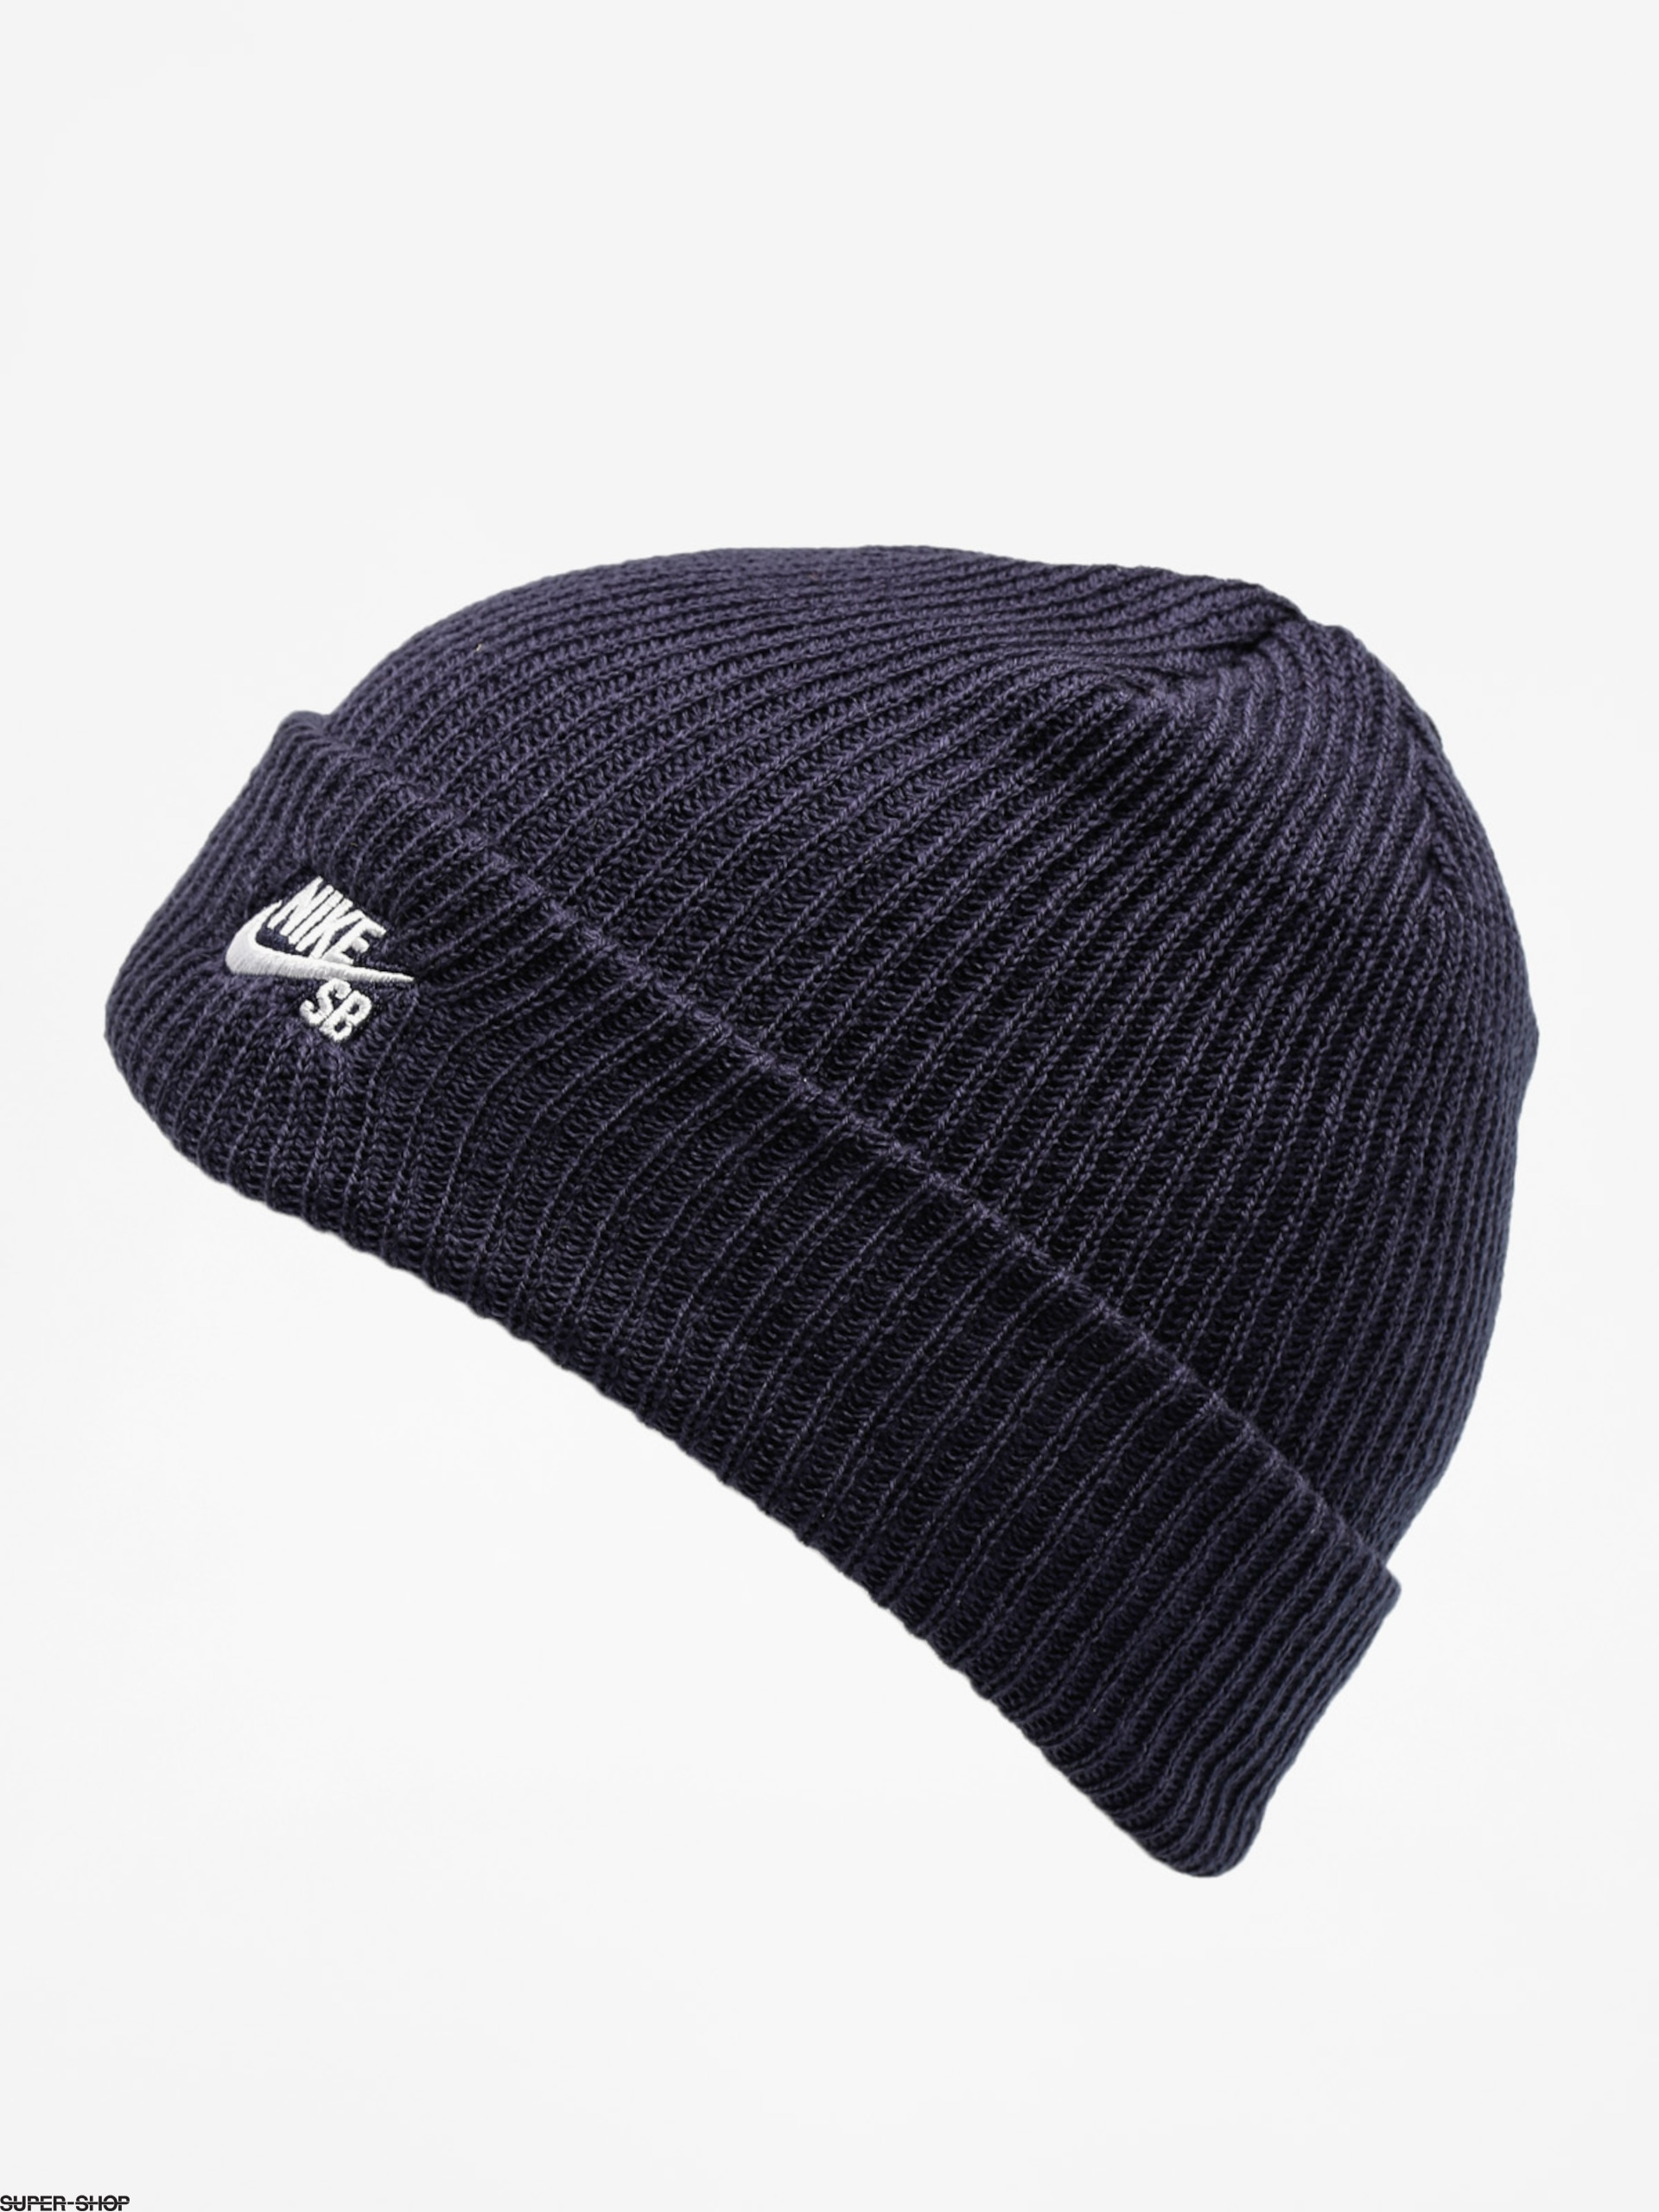 best website 53269 0c410 868765-w1920-nike-sb-beanie-sb-fisherman-beanie-obsidian-white.jpg